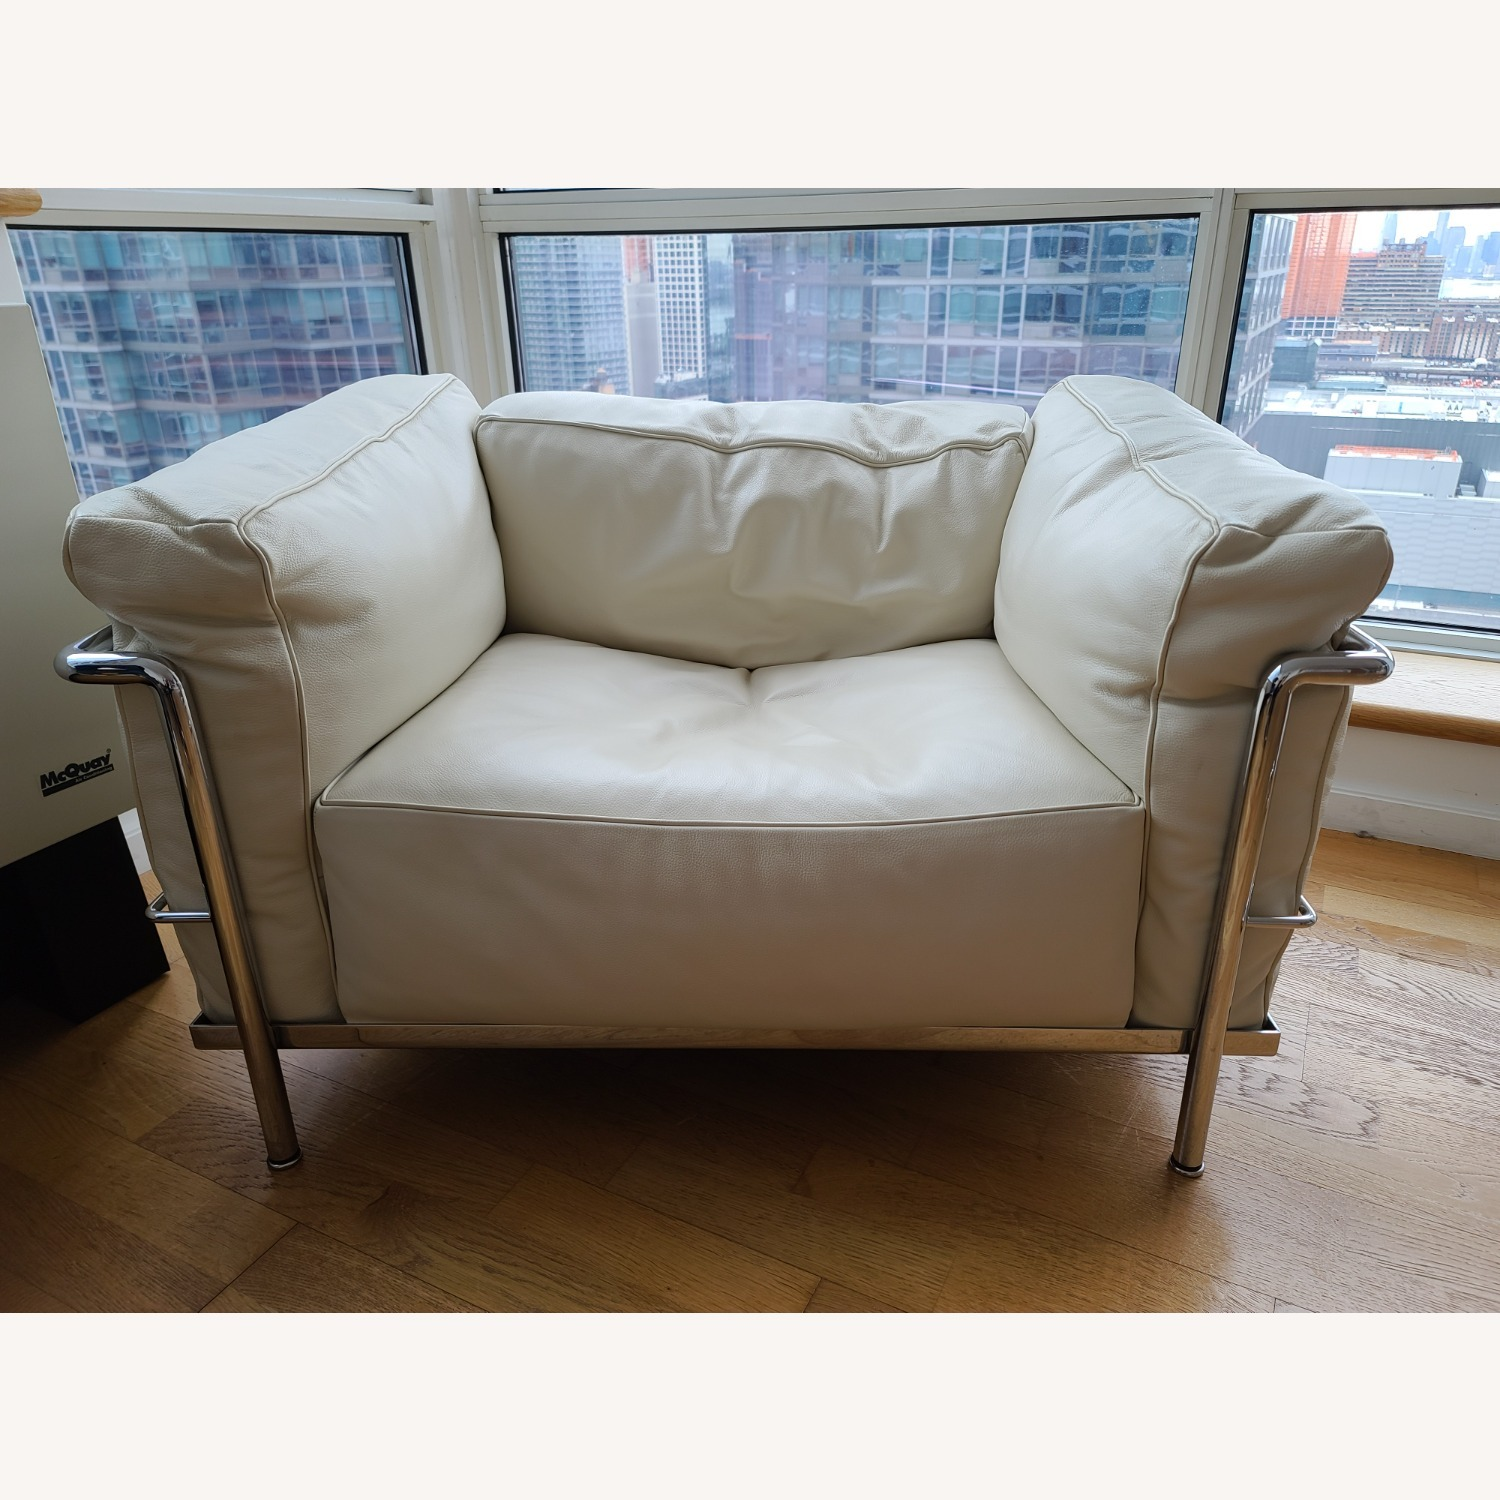 Design within Reach Leather Armchair - image-11